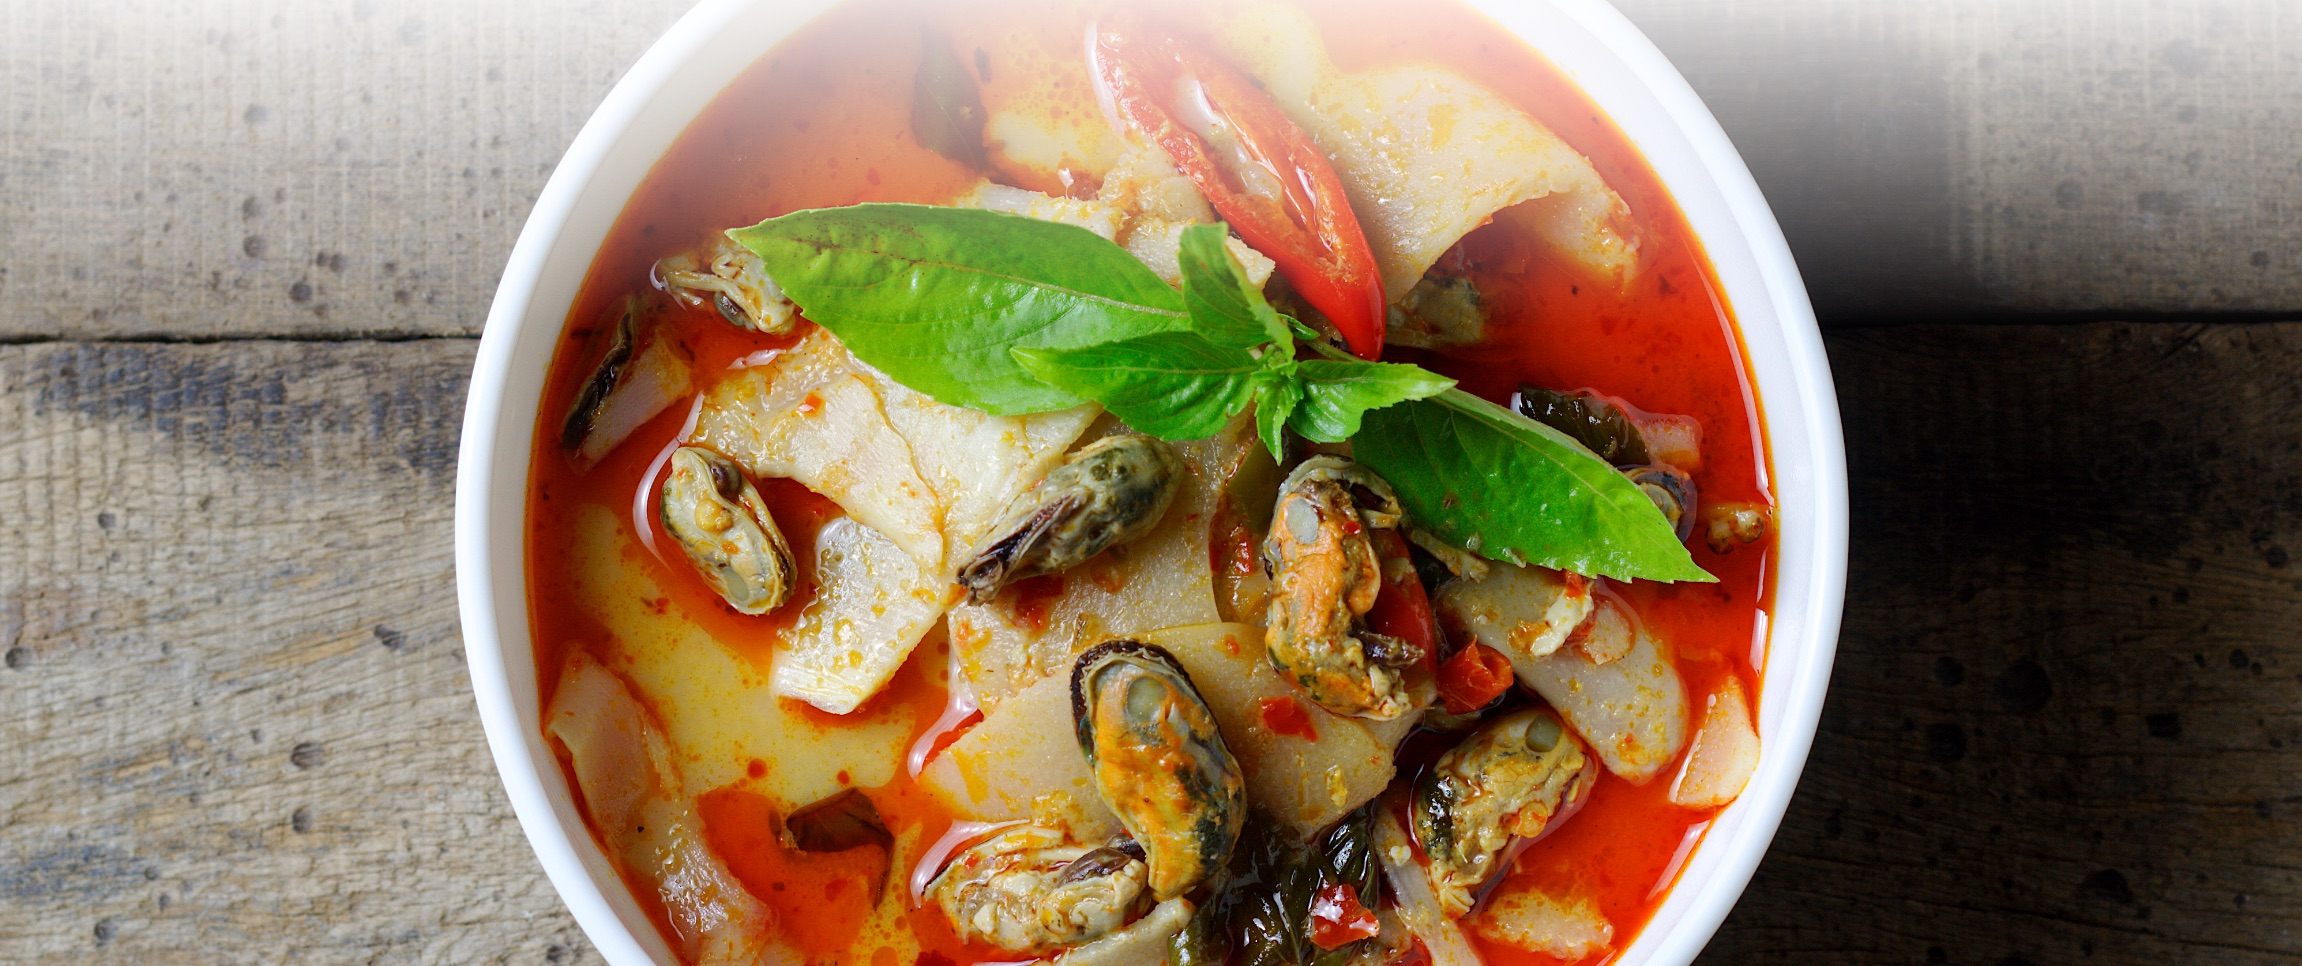 Steamed Mussels and Clams with Coconut Curry